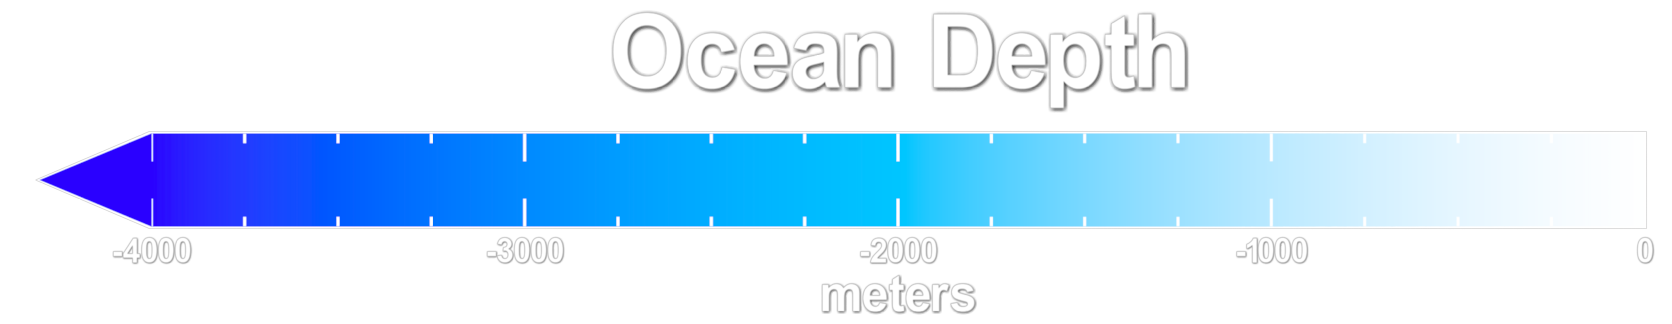 Ocean depth colorbar from white at the surface to cyan at 2000 meters deep to blue at 4000 meters deep